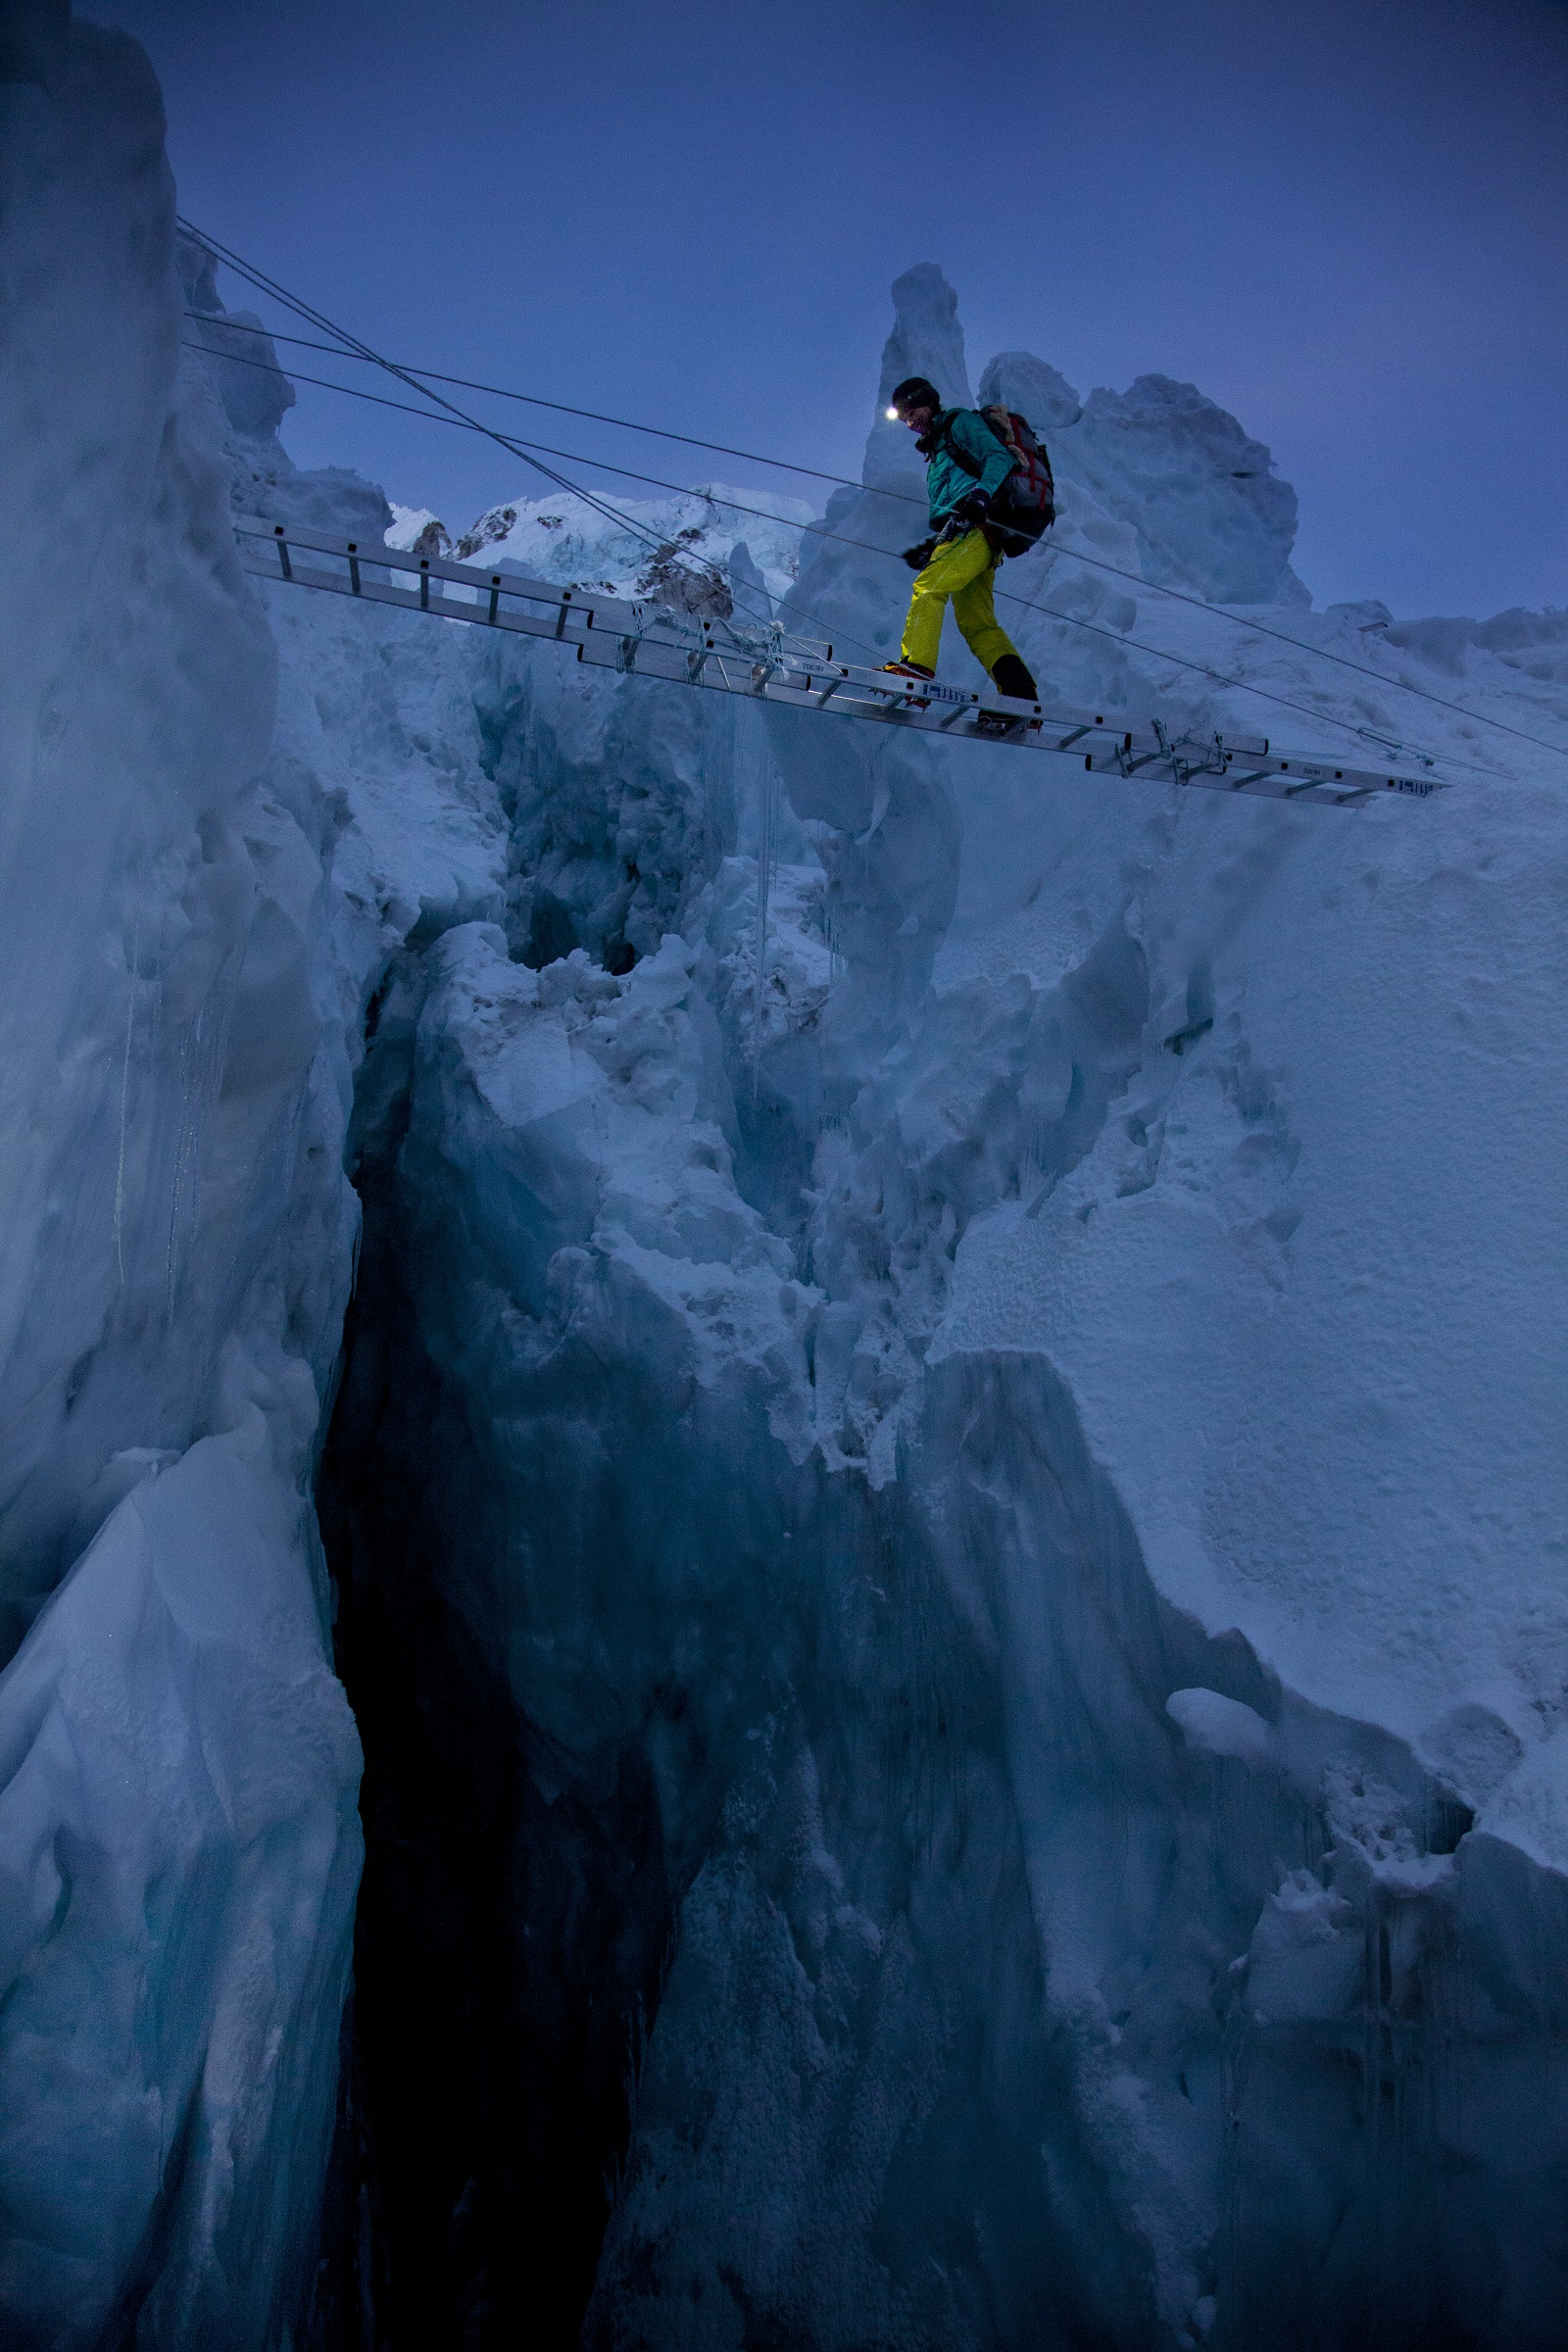 The Perpetual Planet expedition at Khumbu Icefall, Mount Everest. Photo - Rolex